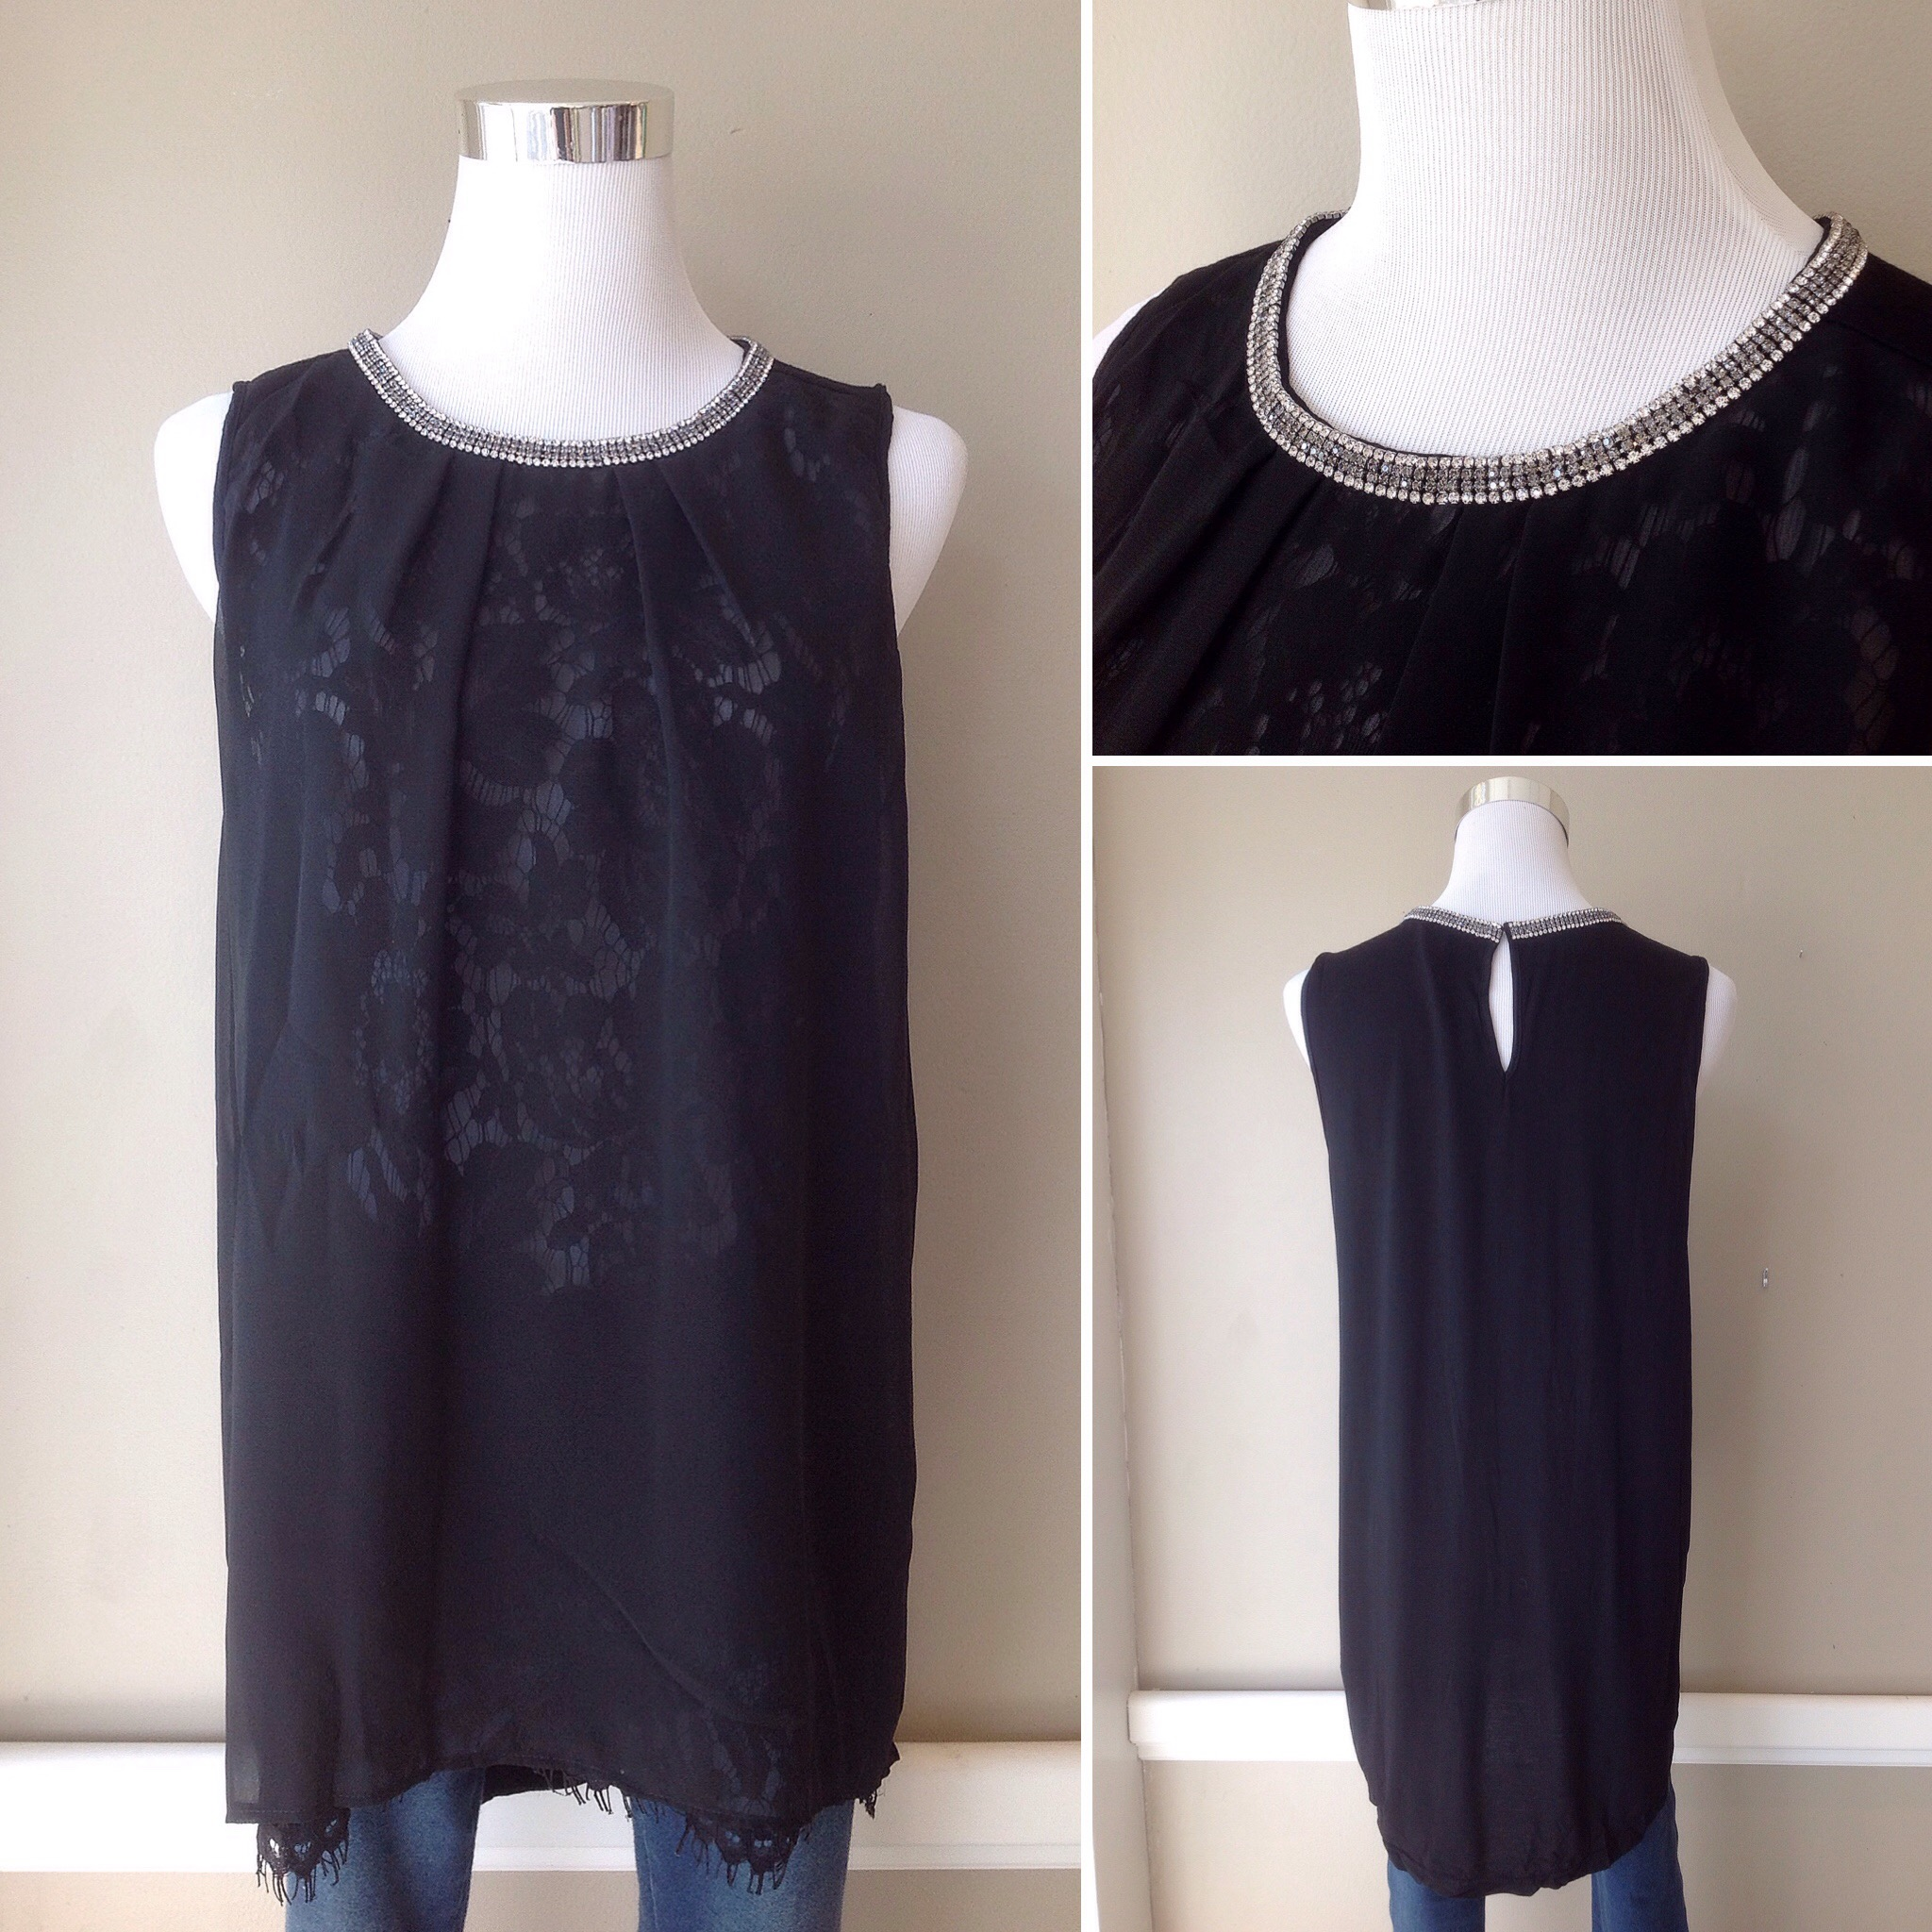 Chiffon and lace front tank with jeweled neck trim and high-low hem, $38